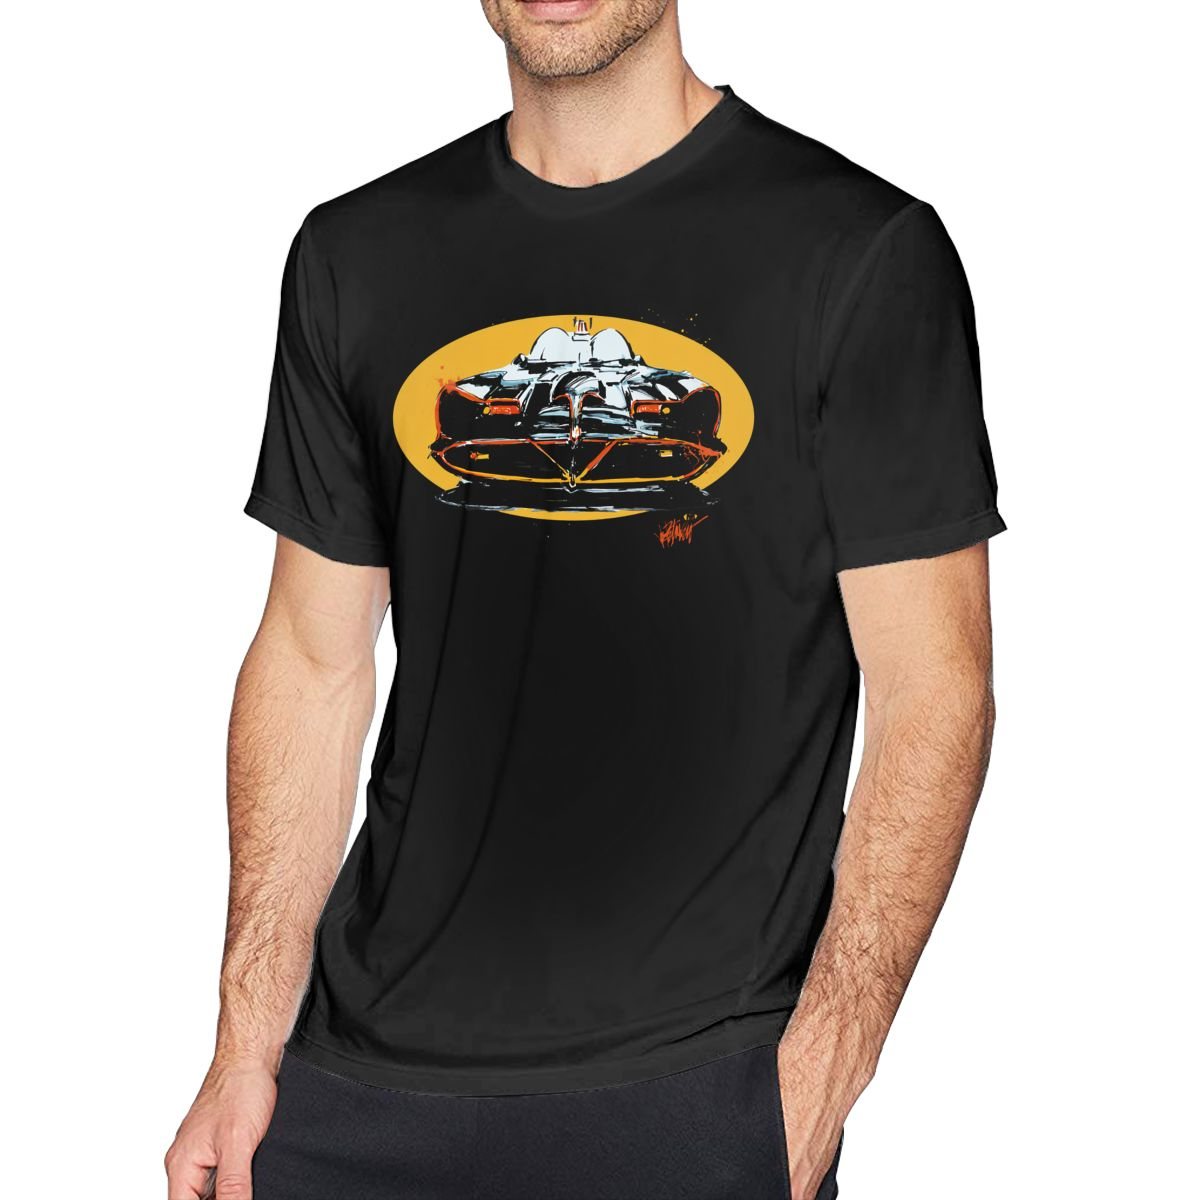 Bat T Shirt The Ultimate Bat Car T-Shirt Men Fun Tee Shirt Short Sleeves 100 Cotton Printed Oversized Tshirt